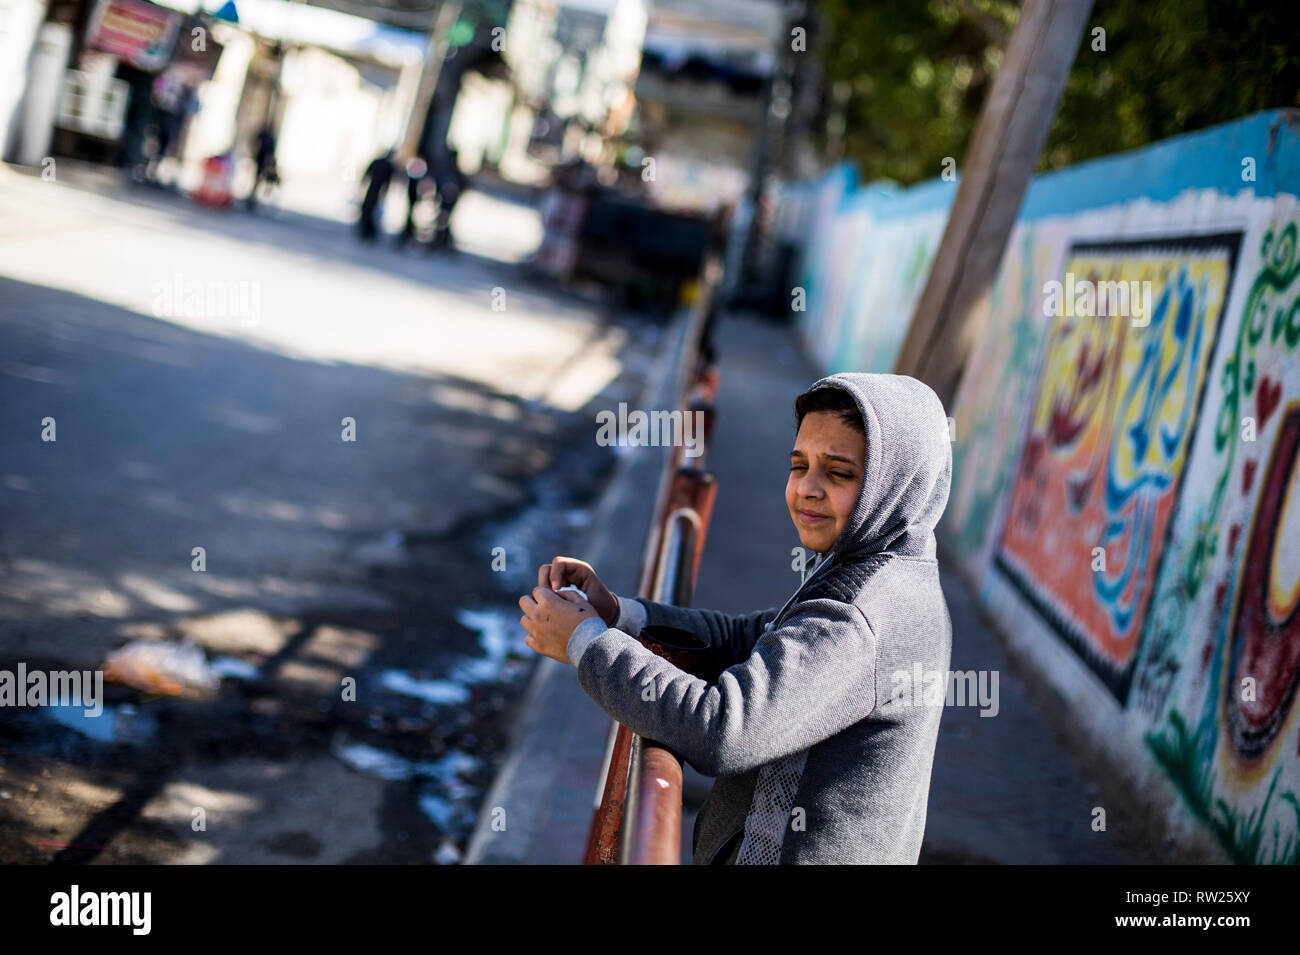 Gaza, Palestine. 4th Mar 2019. A Palestinian child seen standing near their house at the Jabalya refugee camp in the northern Gaza Strip. With high rates of unemployment and lack of job opportunities in Gaza, an increasing number of families are facing poverty after losing work during the last 12-year blockade on Gaza. Credit: SOPA Images Limited/Alamy Live News Stock Photo